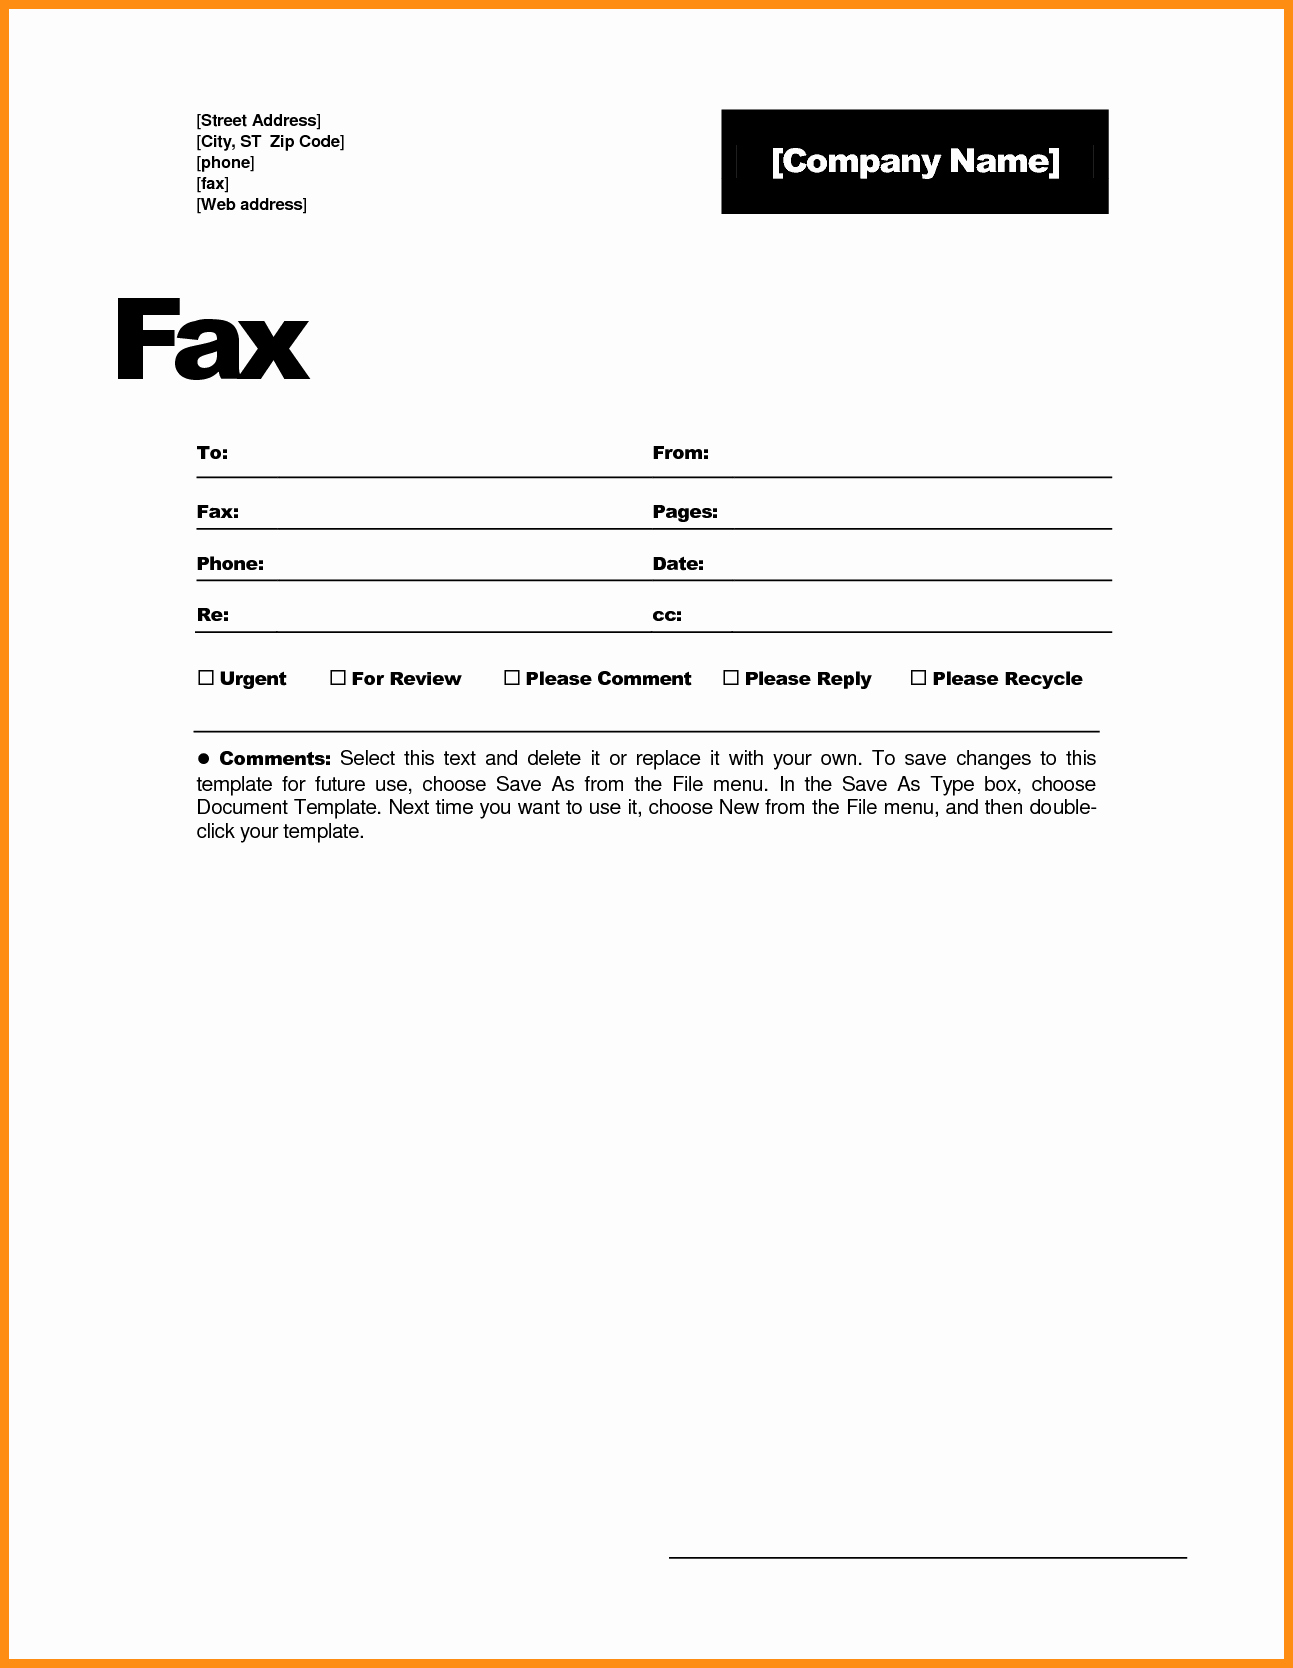 Sample Of Fax Cover Letter Fresh 6 Free Fax Cover Sheet Template Word